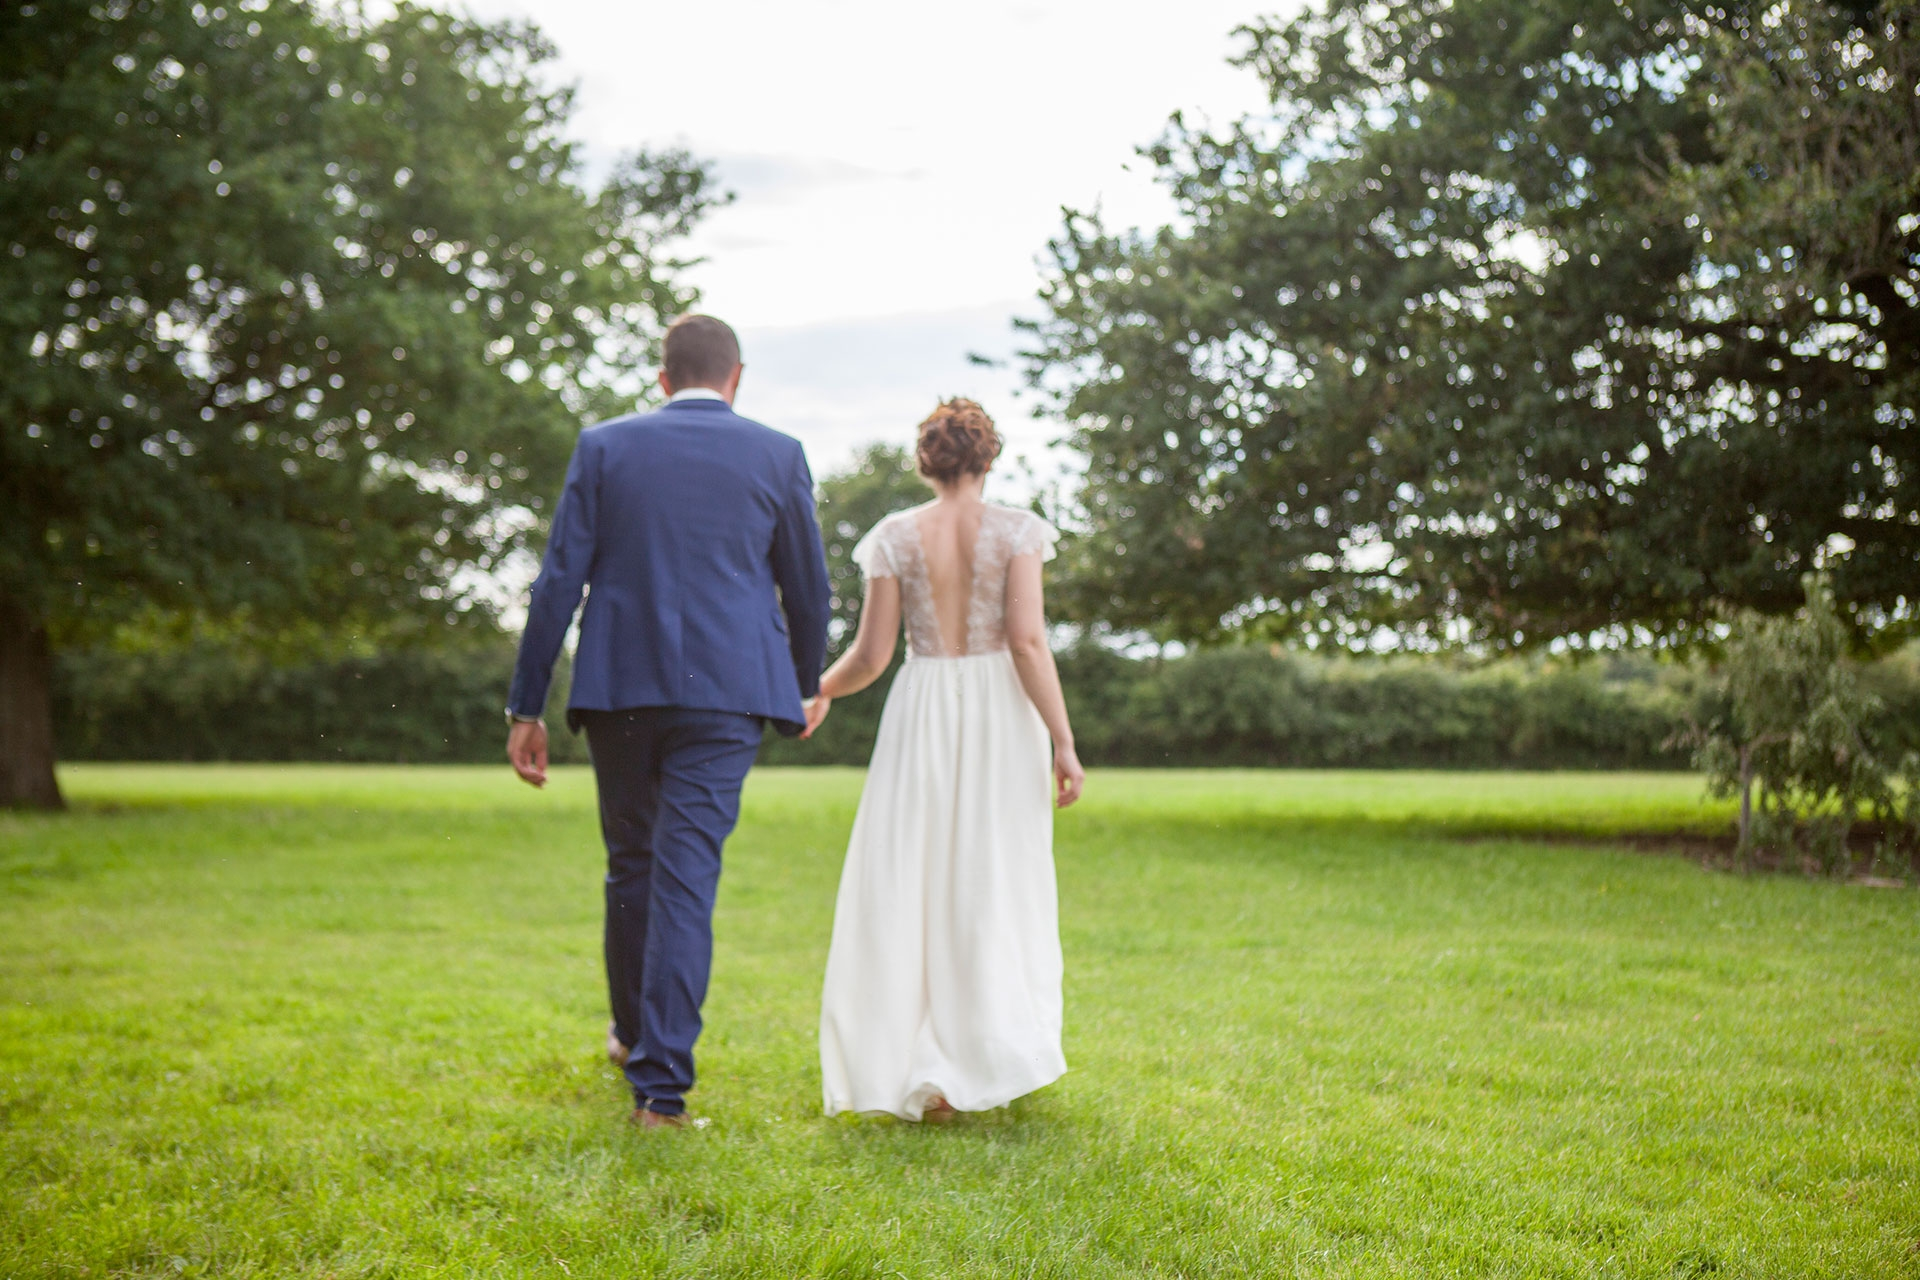 particuliers-evenements-mariages-oui-clementine&alexandre-56